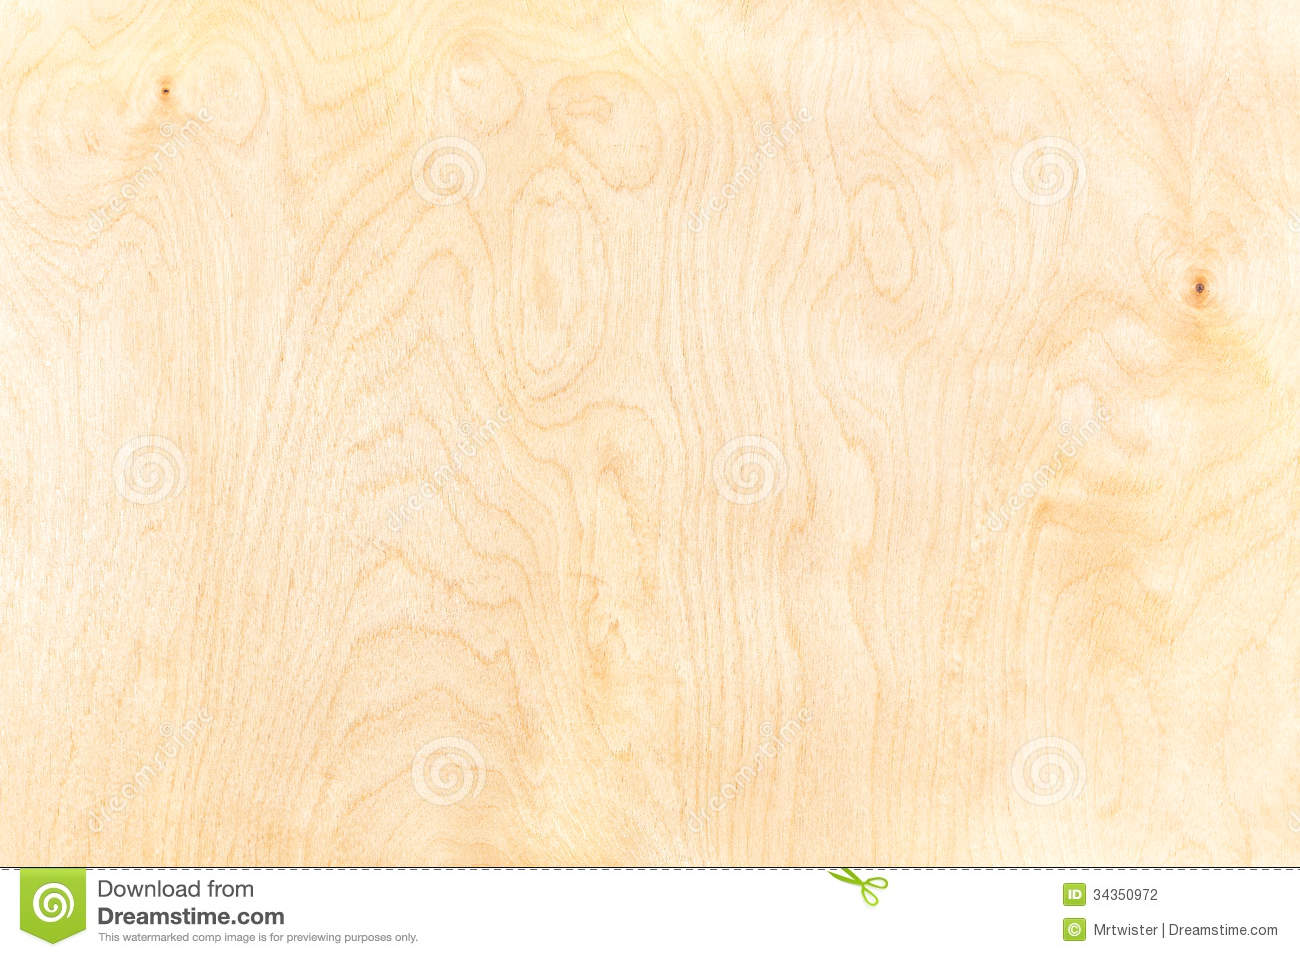 Woodworking birch ply wood PDF Free Download